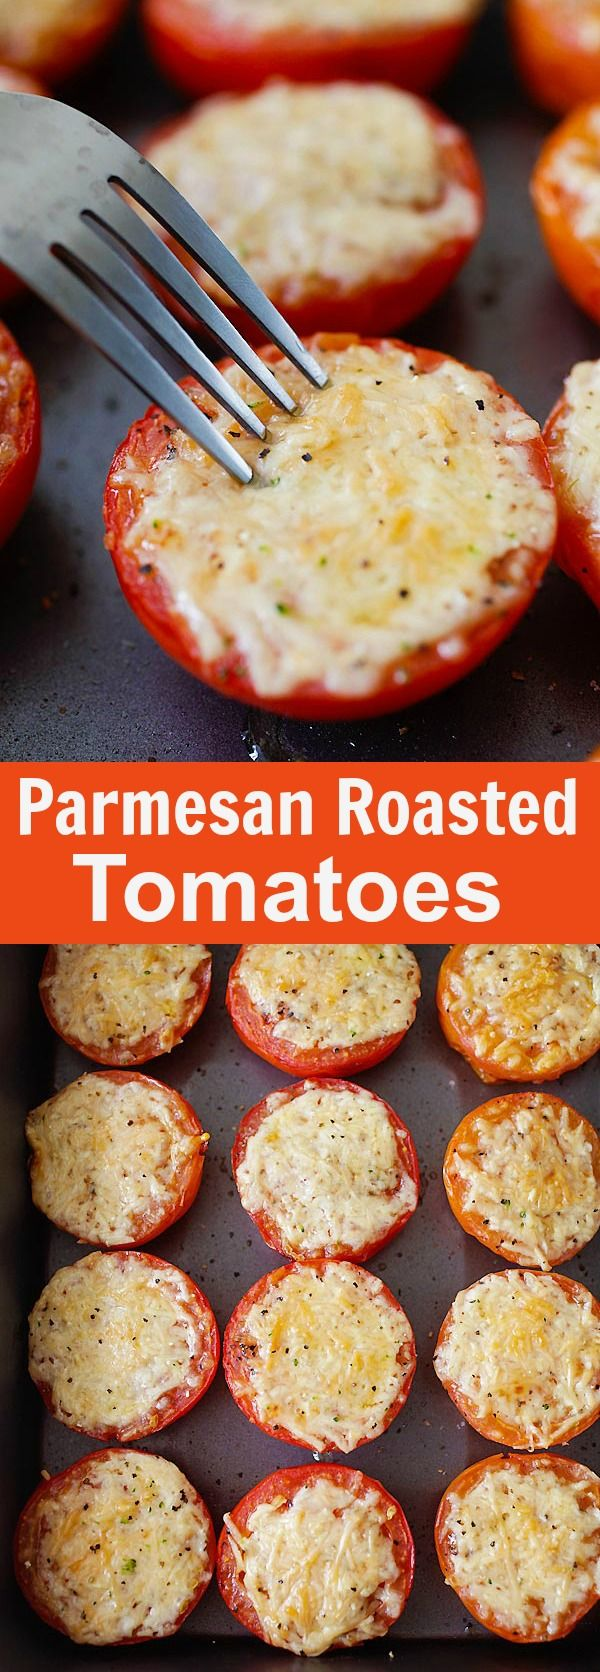 Parmesan Roasted Tomatoes – juicy and plump roasted tomatoes loaded with Parmesan cheese. So easy to make, fool-proof and amazing | rasamalaysia.com